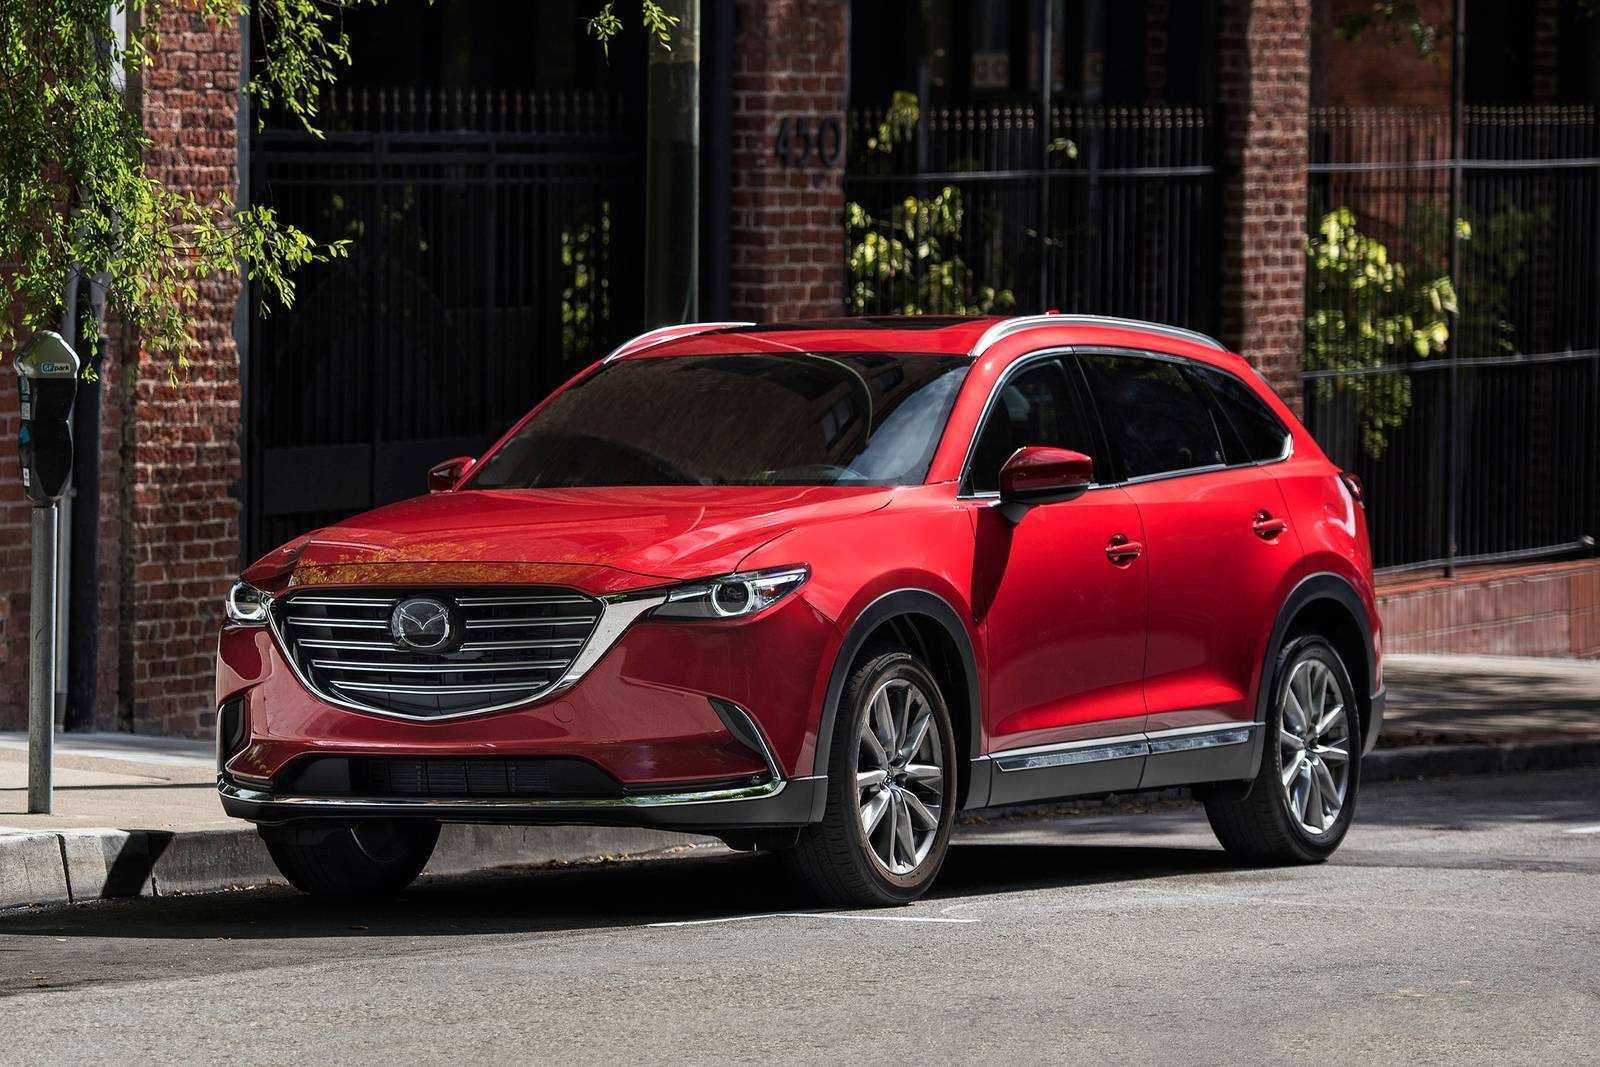 77 All New 2019 Mazda CX 9 Engine